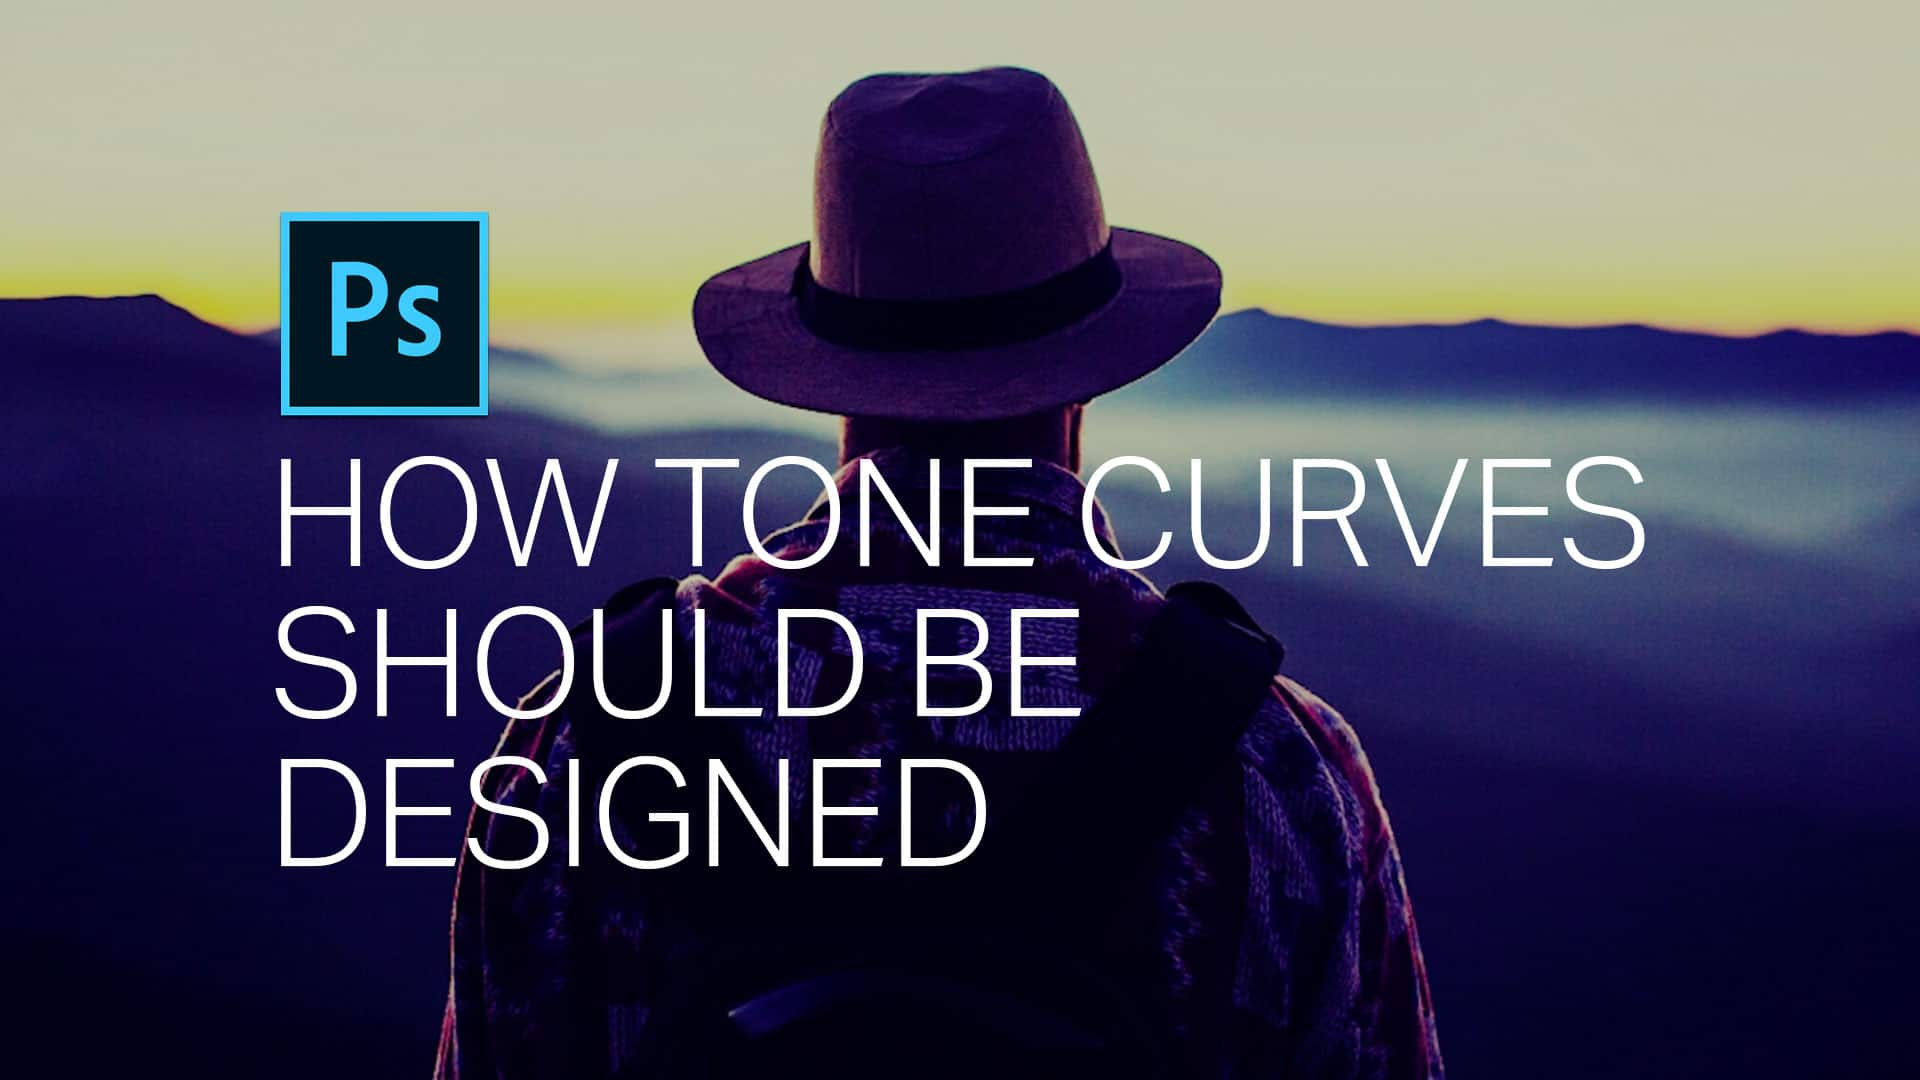 Dear Adobe, How to Redesign the Tone Curve